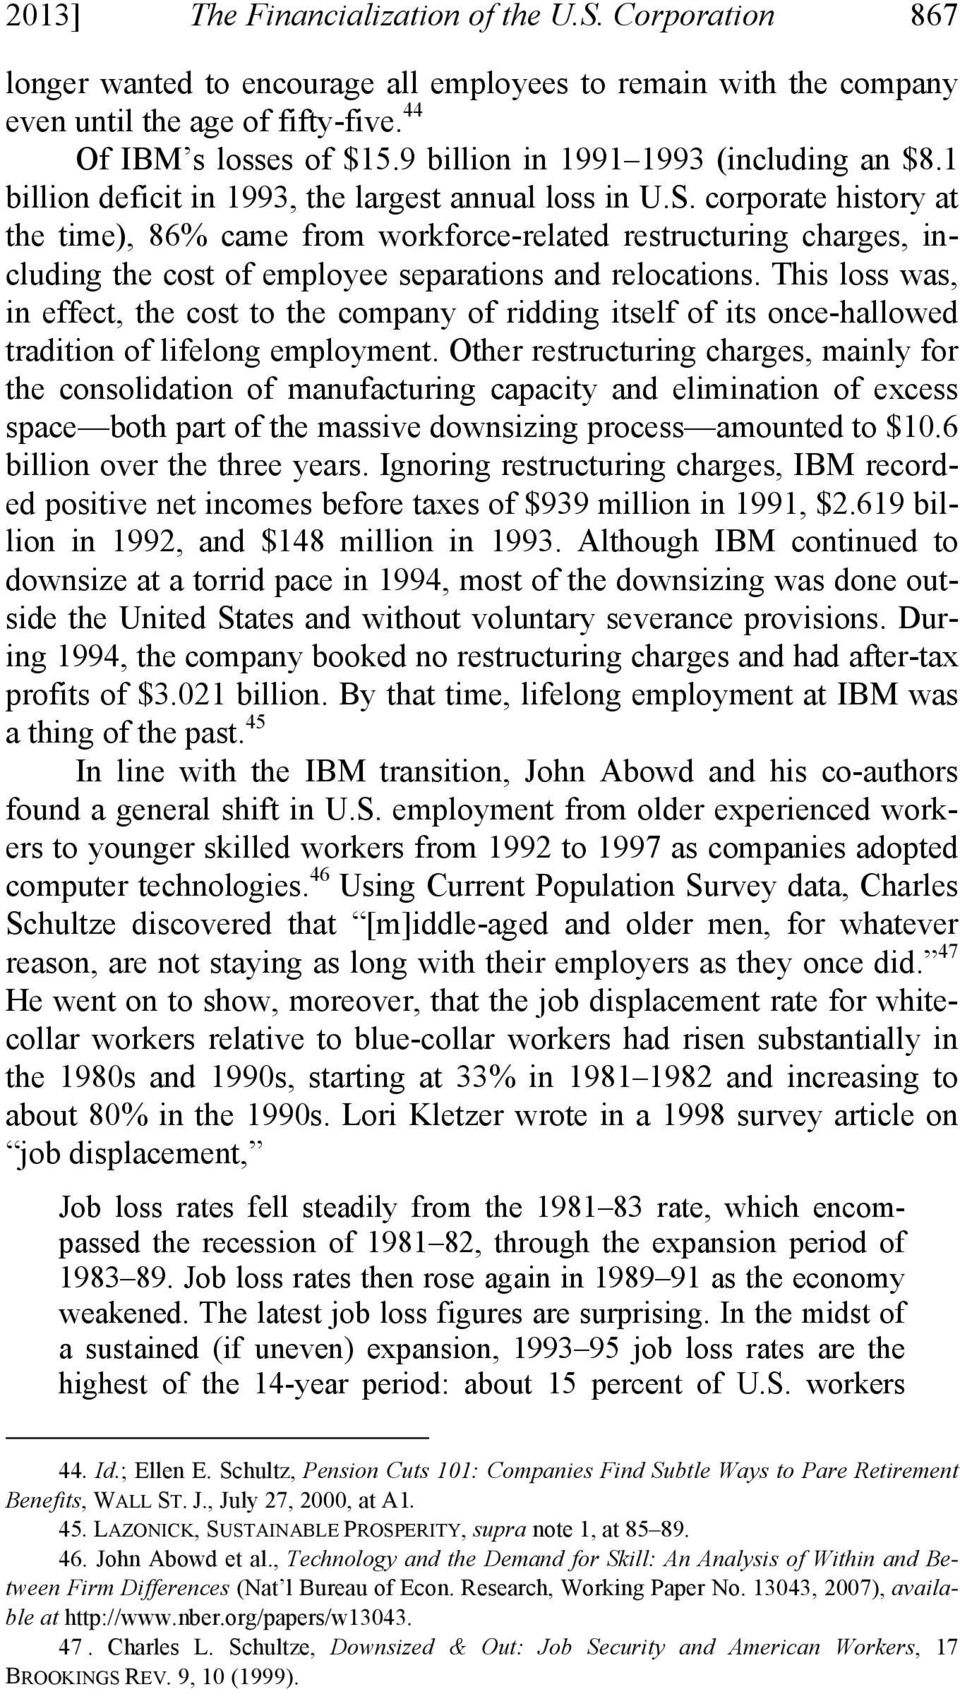 corporate history at the time), 86% came from workforce-related restructuring charges, including the cost of employee separations and relocations.